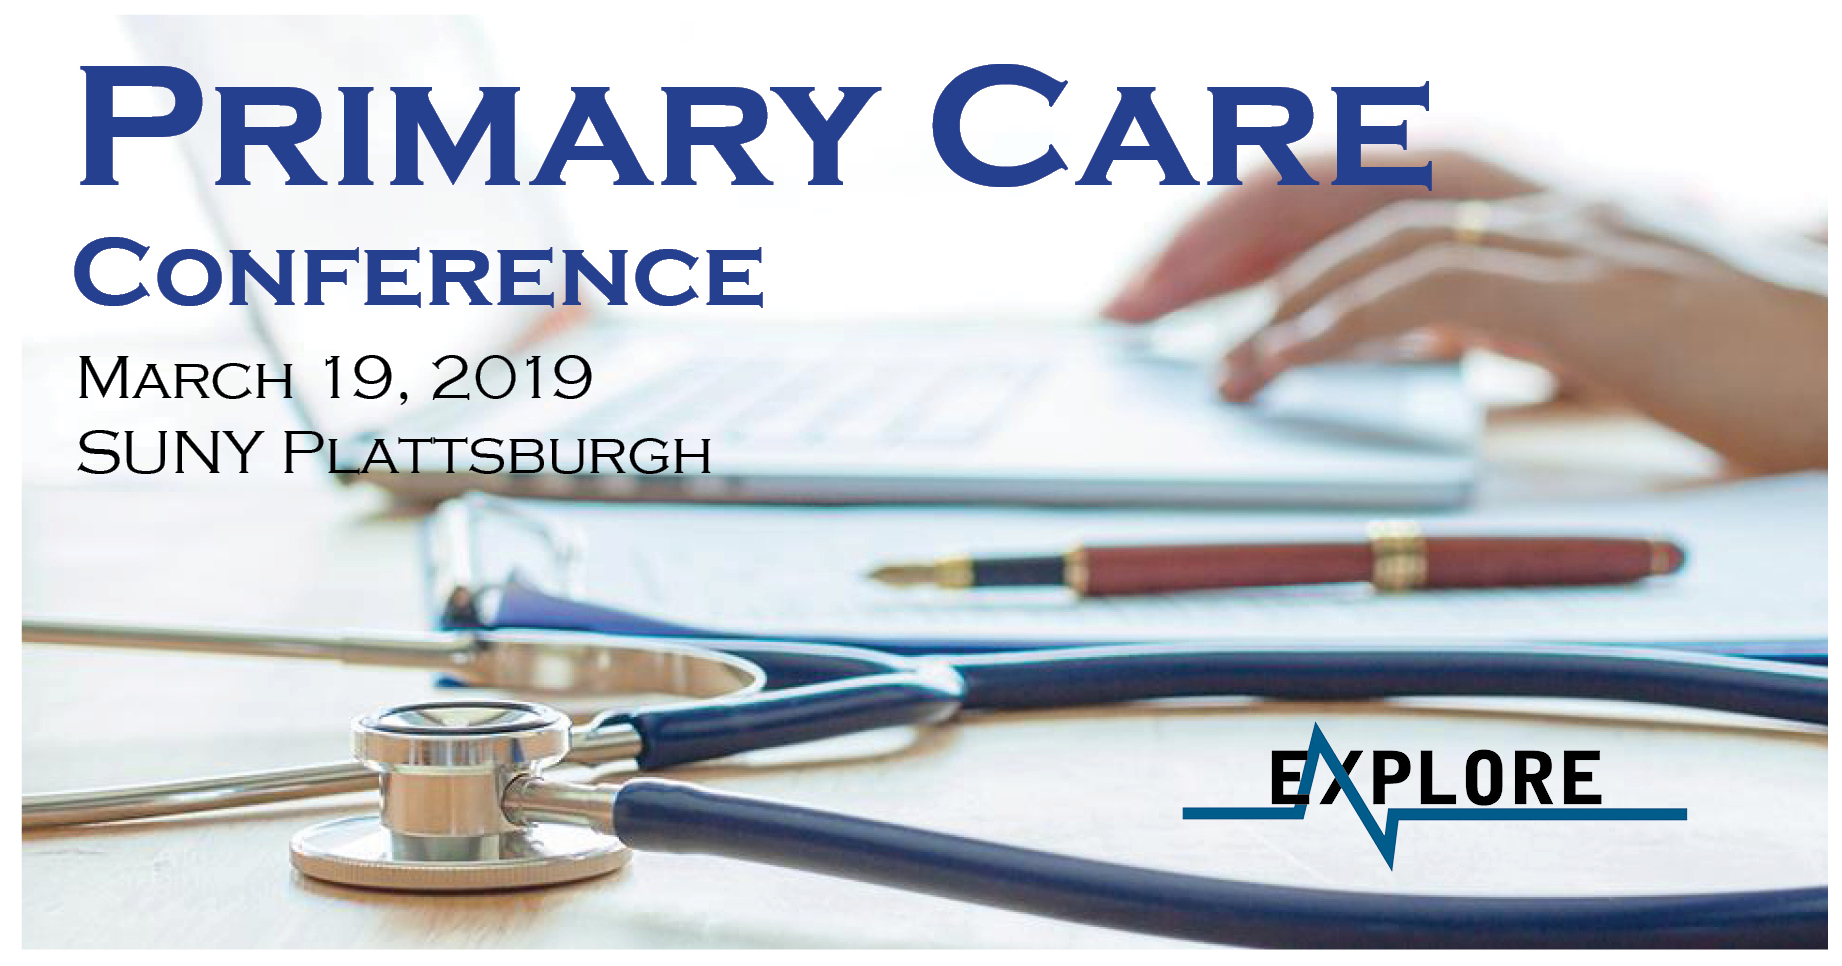 Primary Care conference